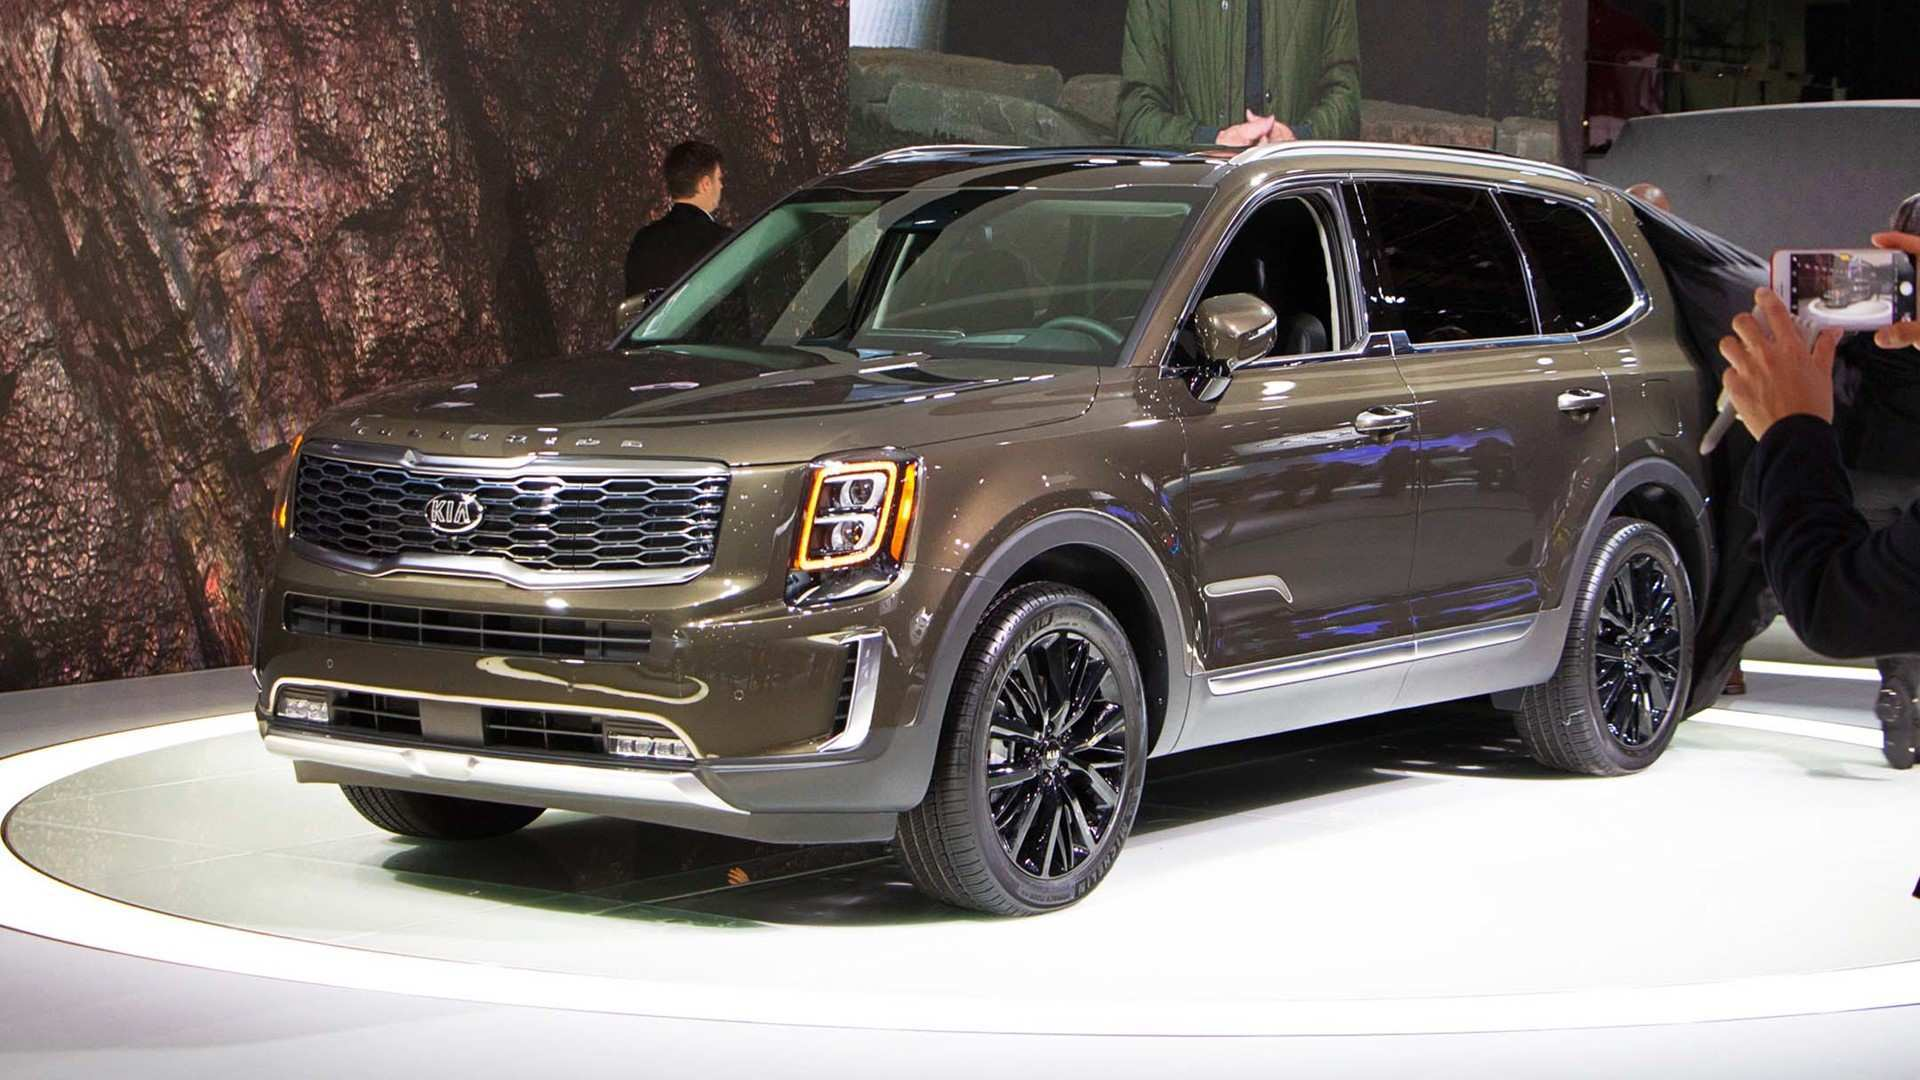 12 All New Kia Telluride 2020 For Sale 2 Configurations